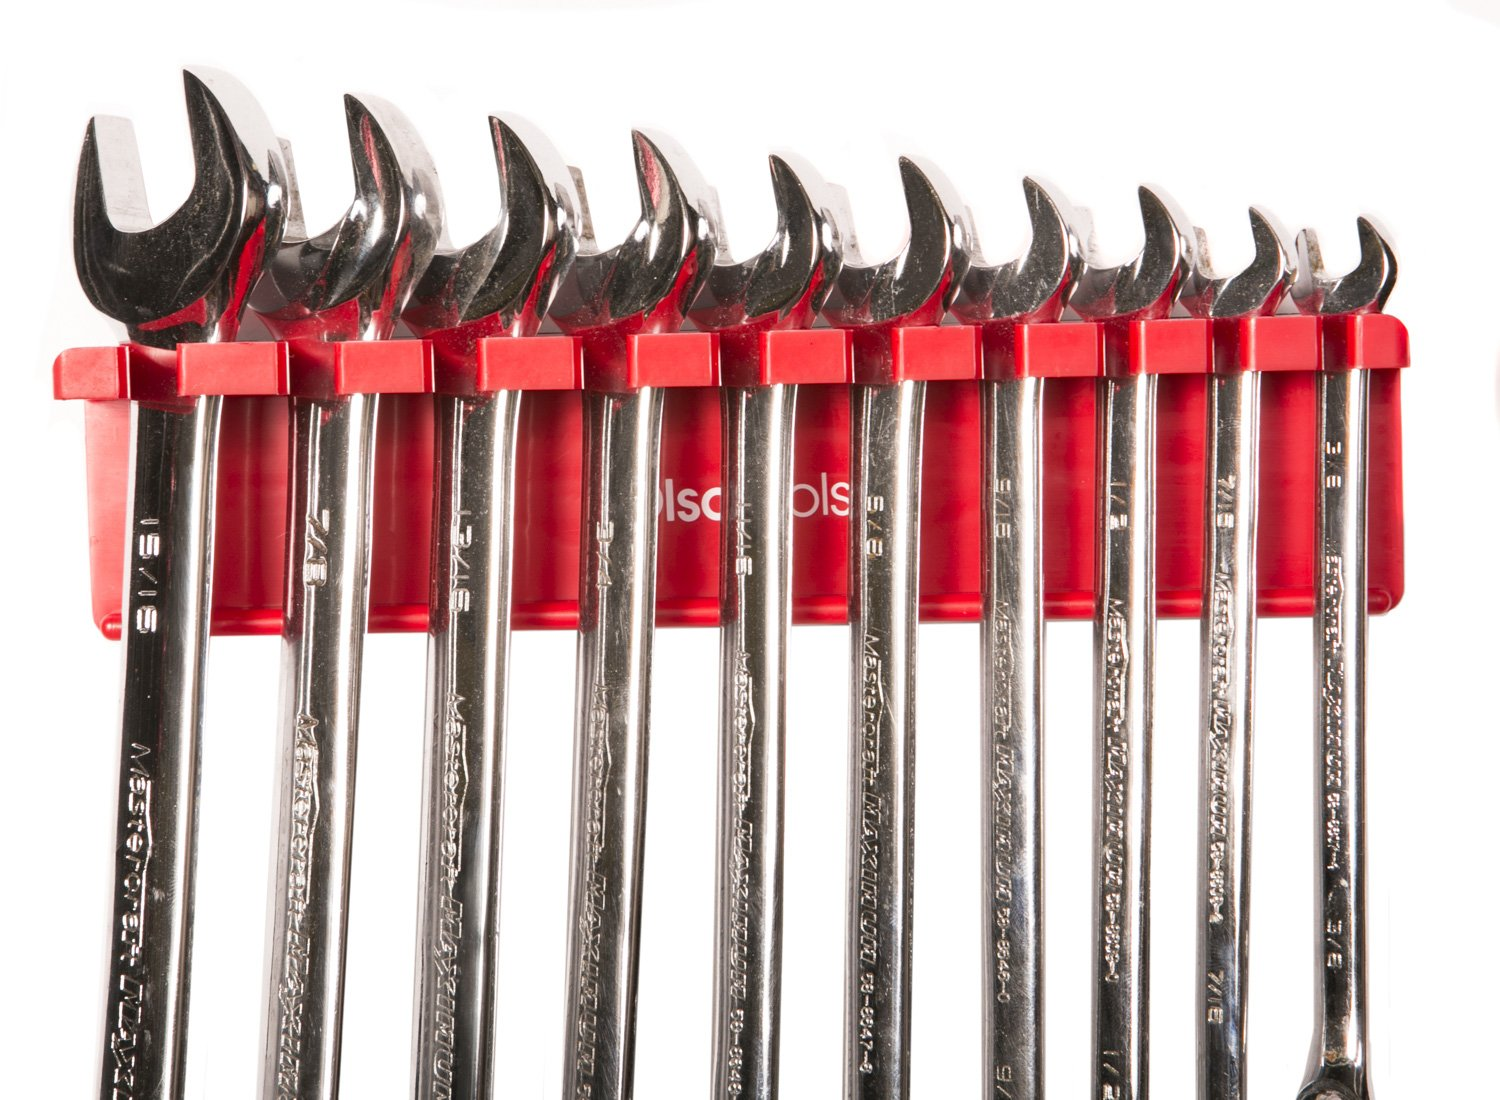 Olsa Tools Magnetic Wrench Organizer | Wrench Holder Fits Wrenches SAE 3/8'' thru 15/16'' & Metric 10mm thru 19mm | Premium Quality Tool Organizer (RED)